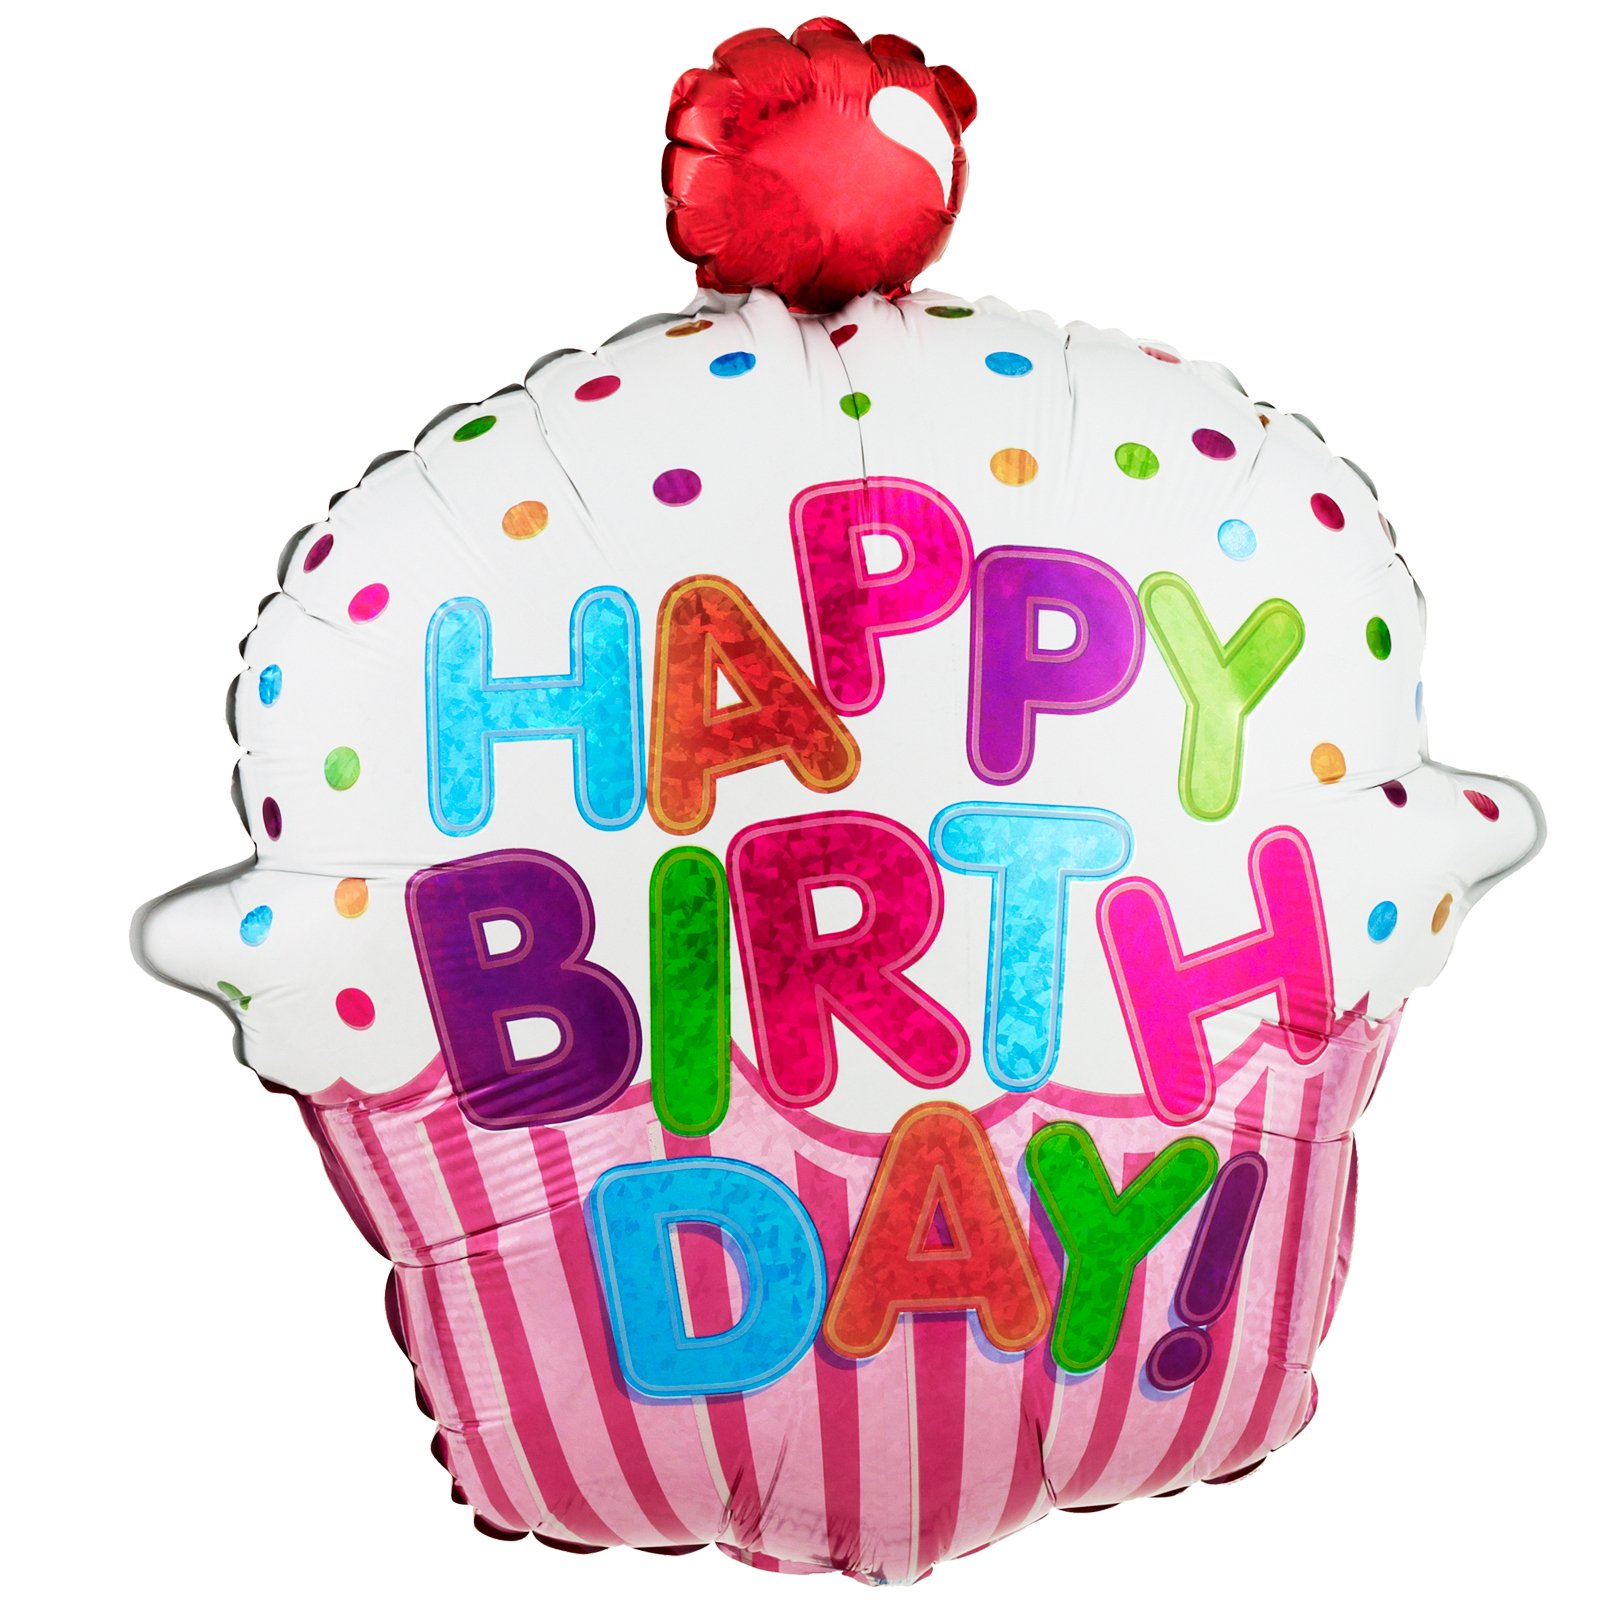 Download Free Happy Birthday Wallpapers Most Beautiful